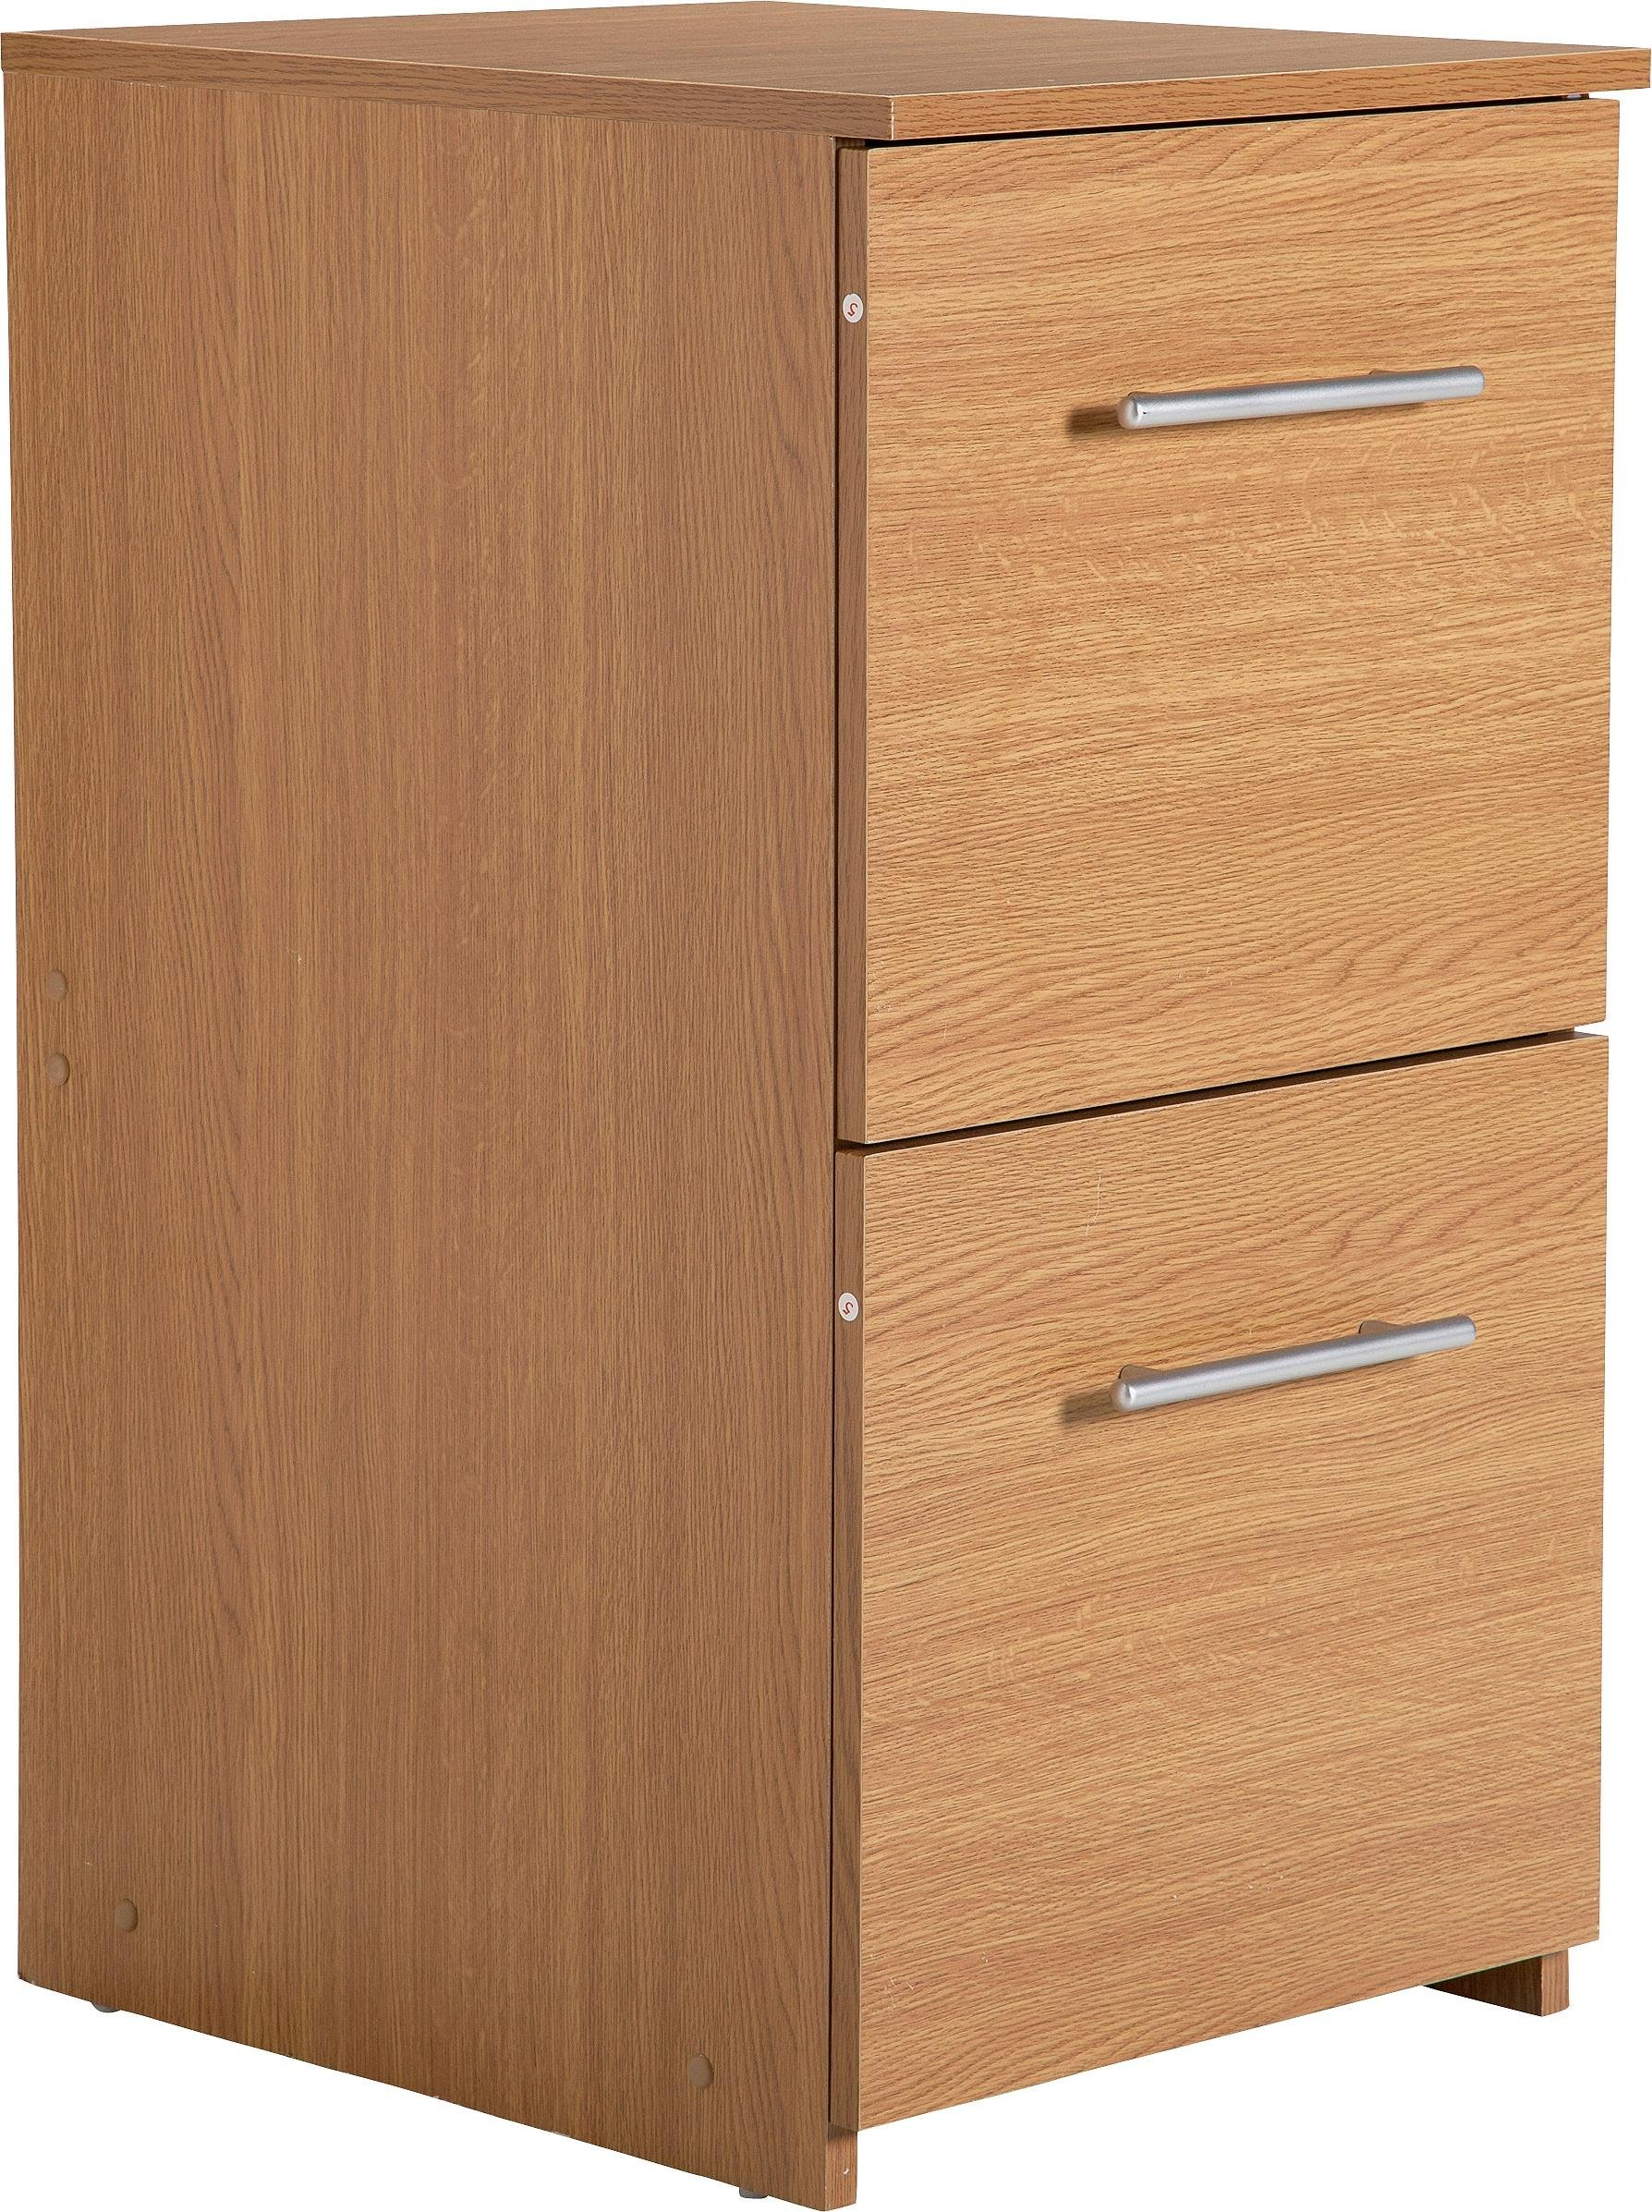 home 2 drawer filing cabinet oak effect617 - Small File Cabinet